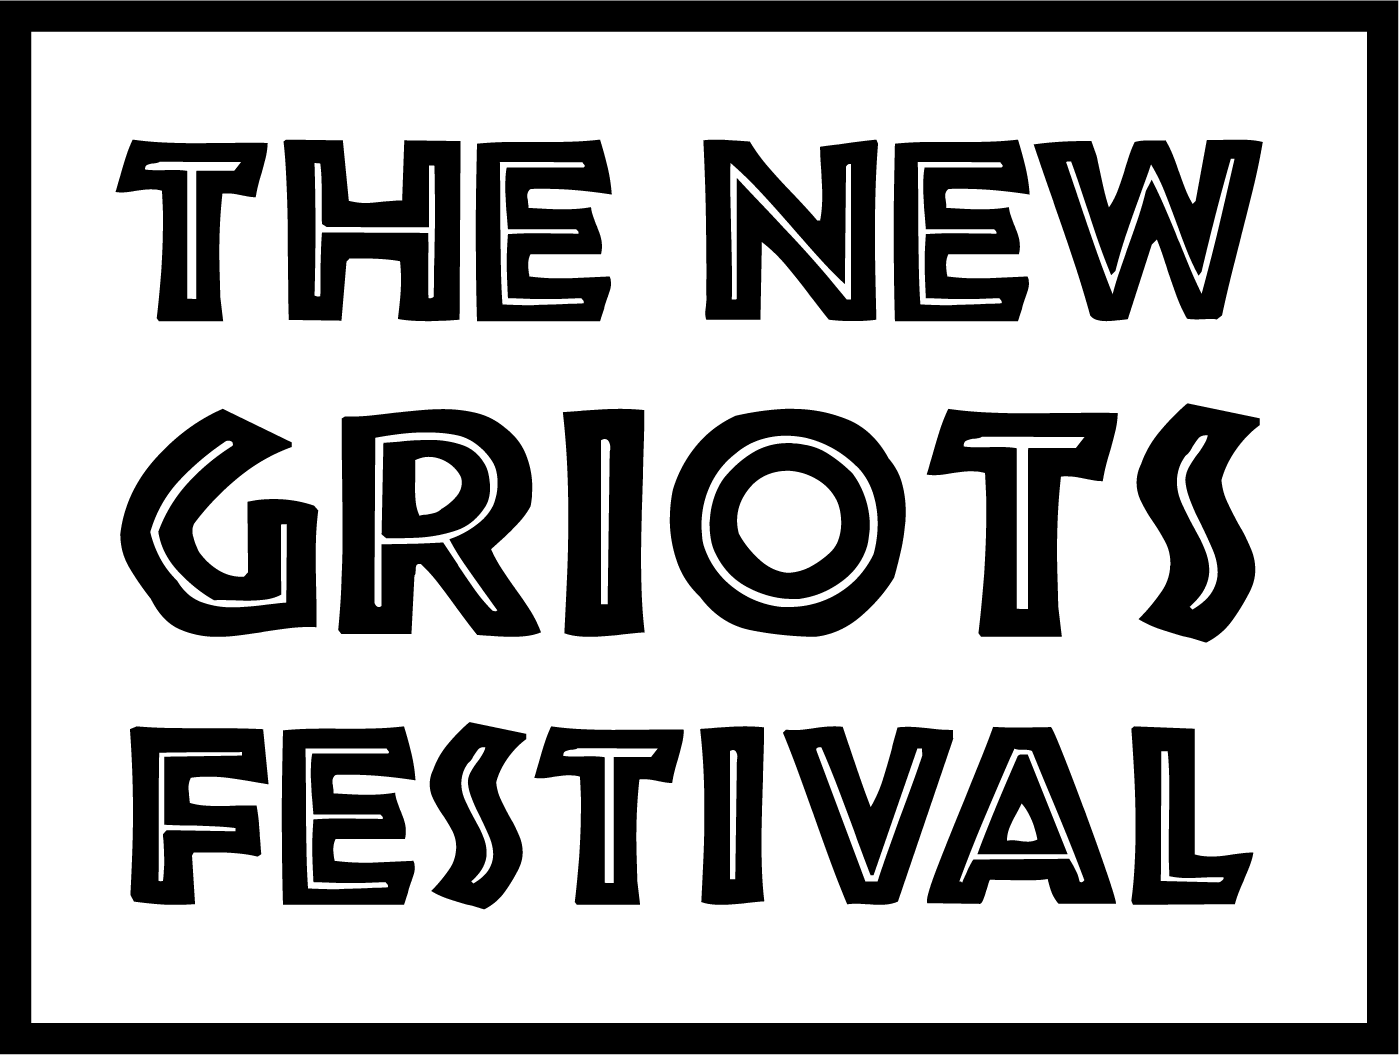 GriotsFestival-Logo_1.png